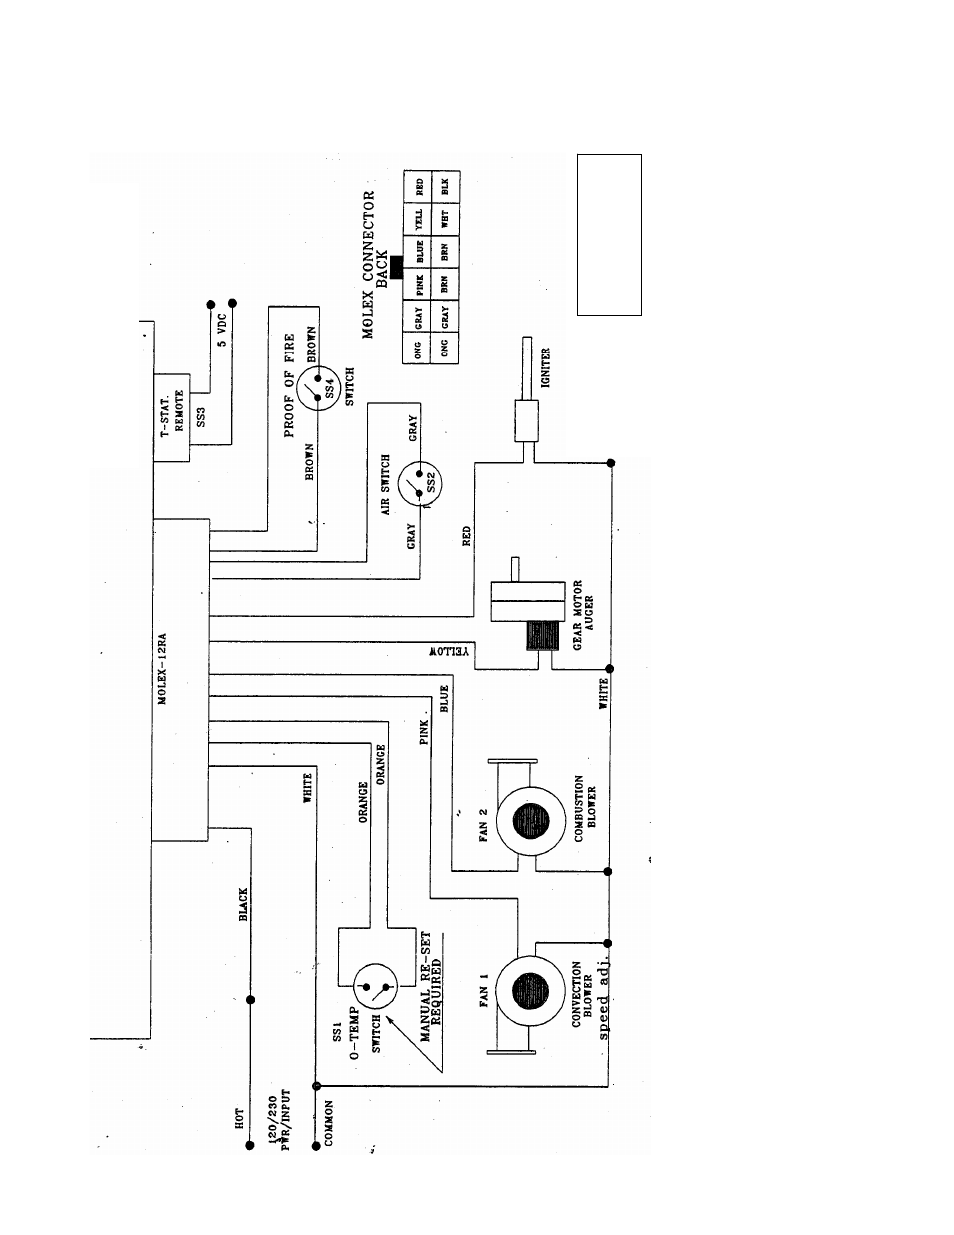 CC283 Ddc Panel Wiring Diagram | Wiring Library